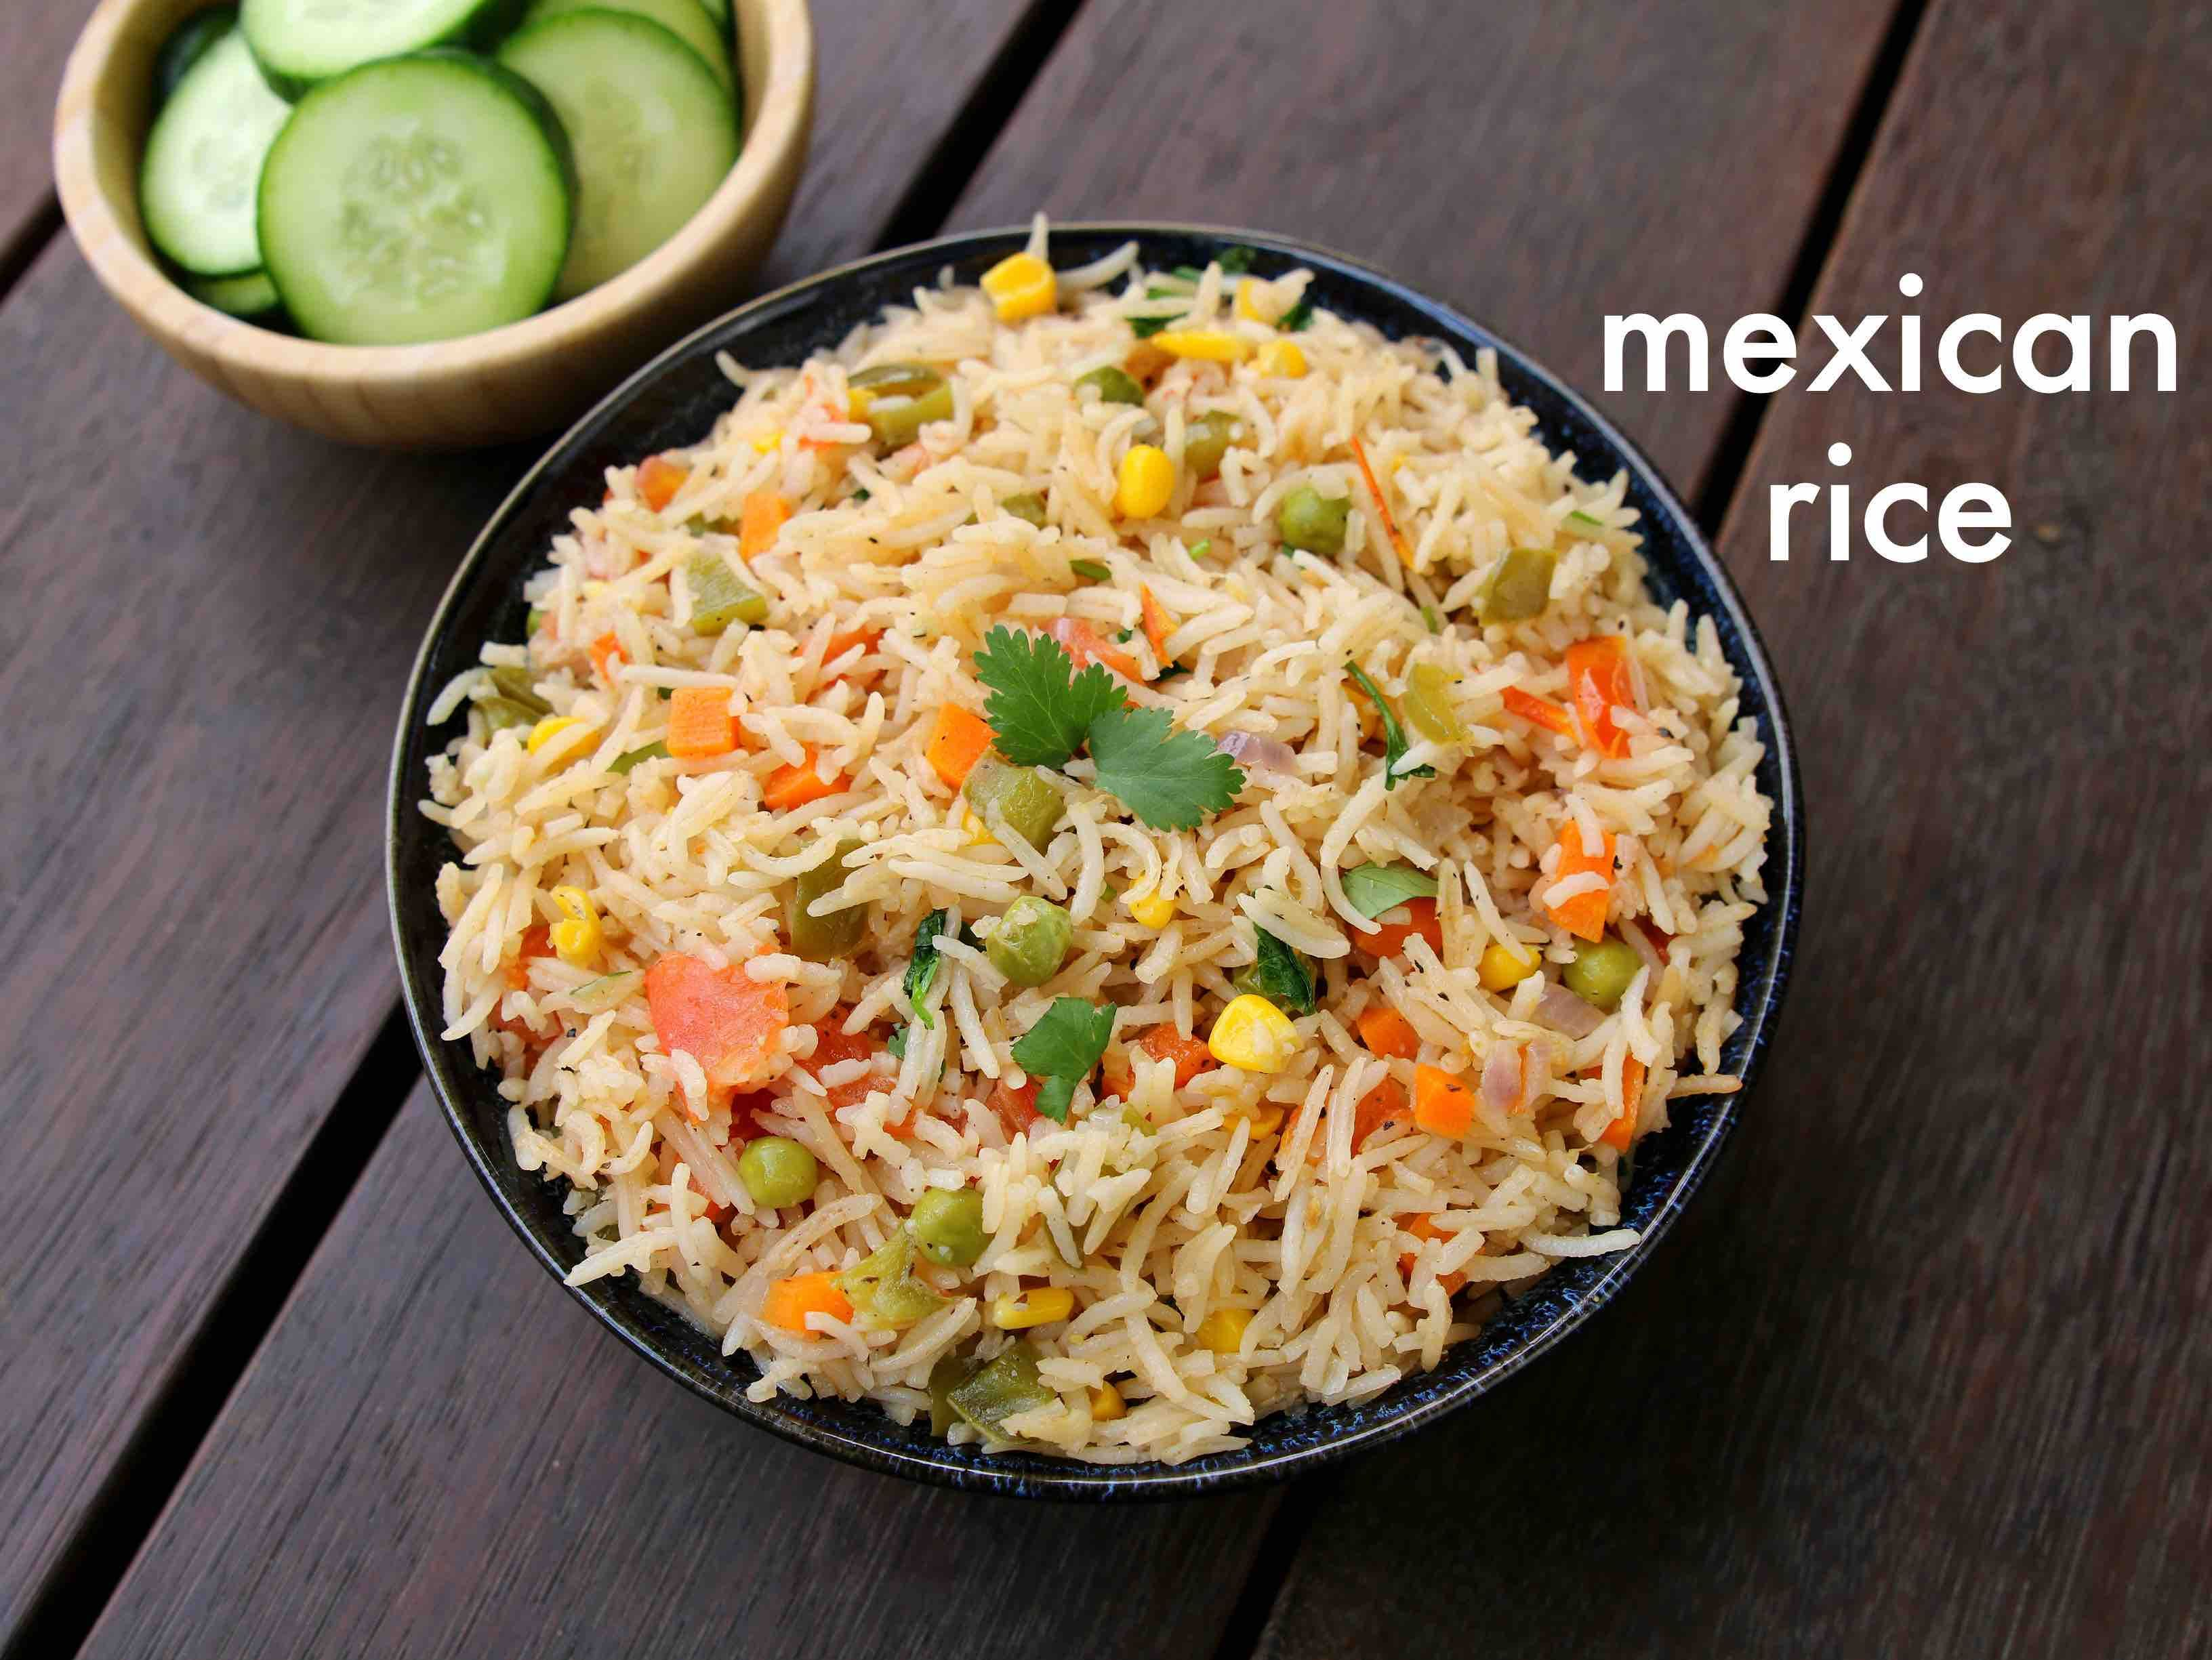 Mexican Rice Recipe How To Make Restaurant Style Authentic